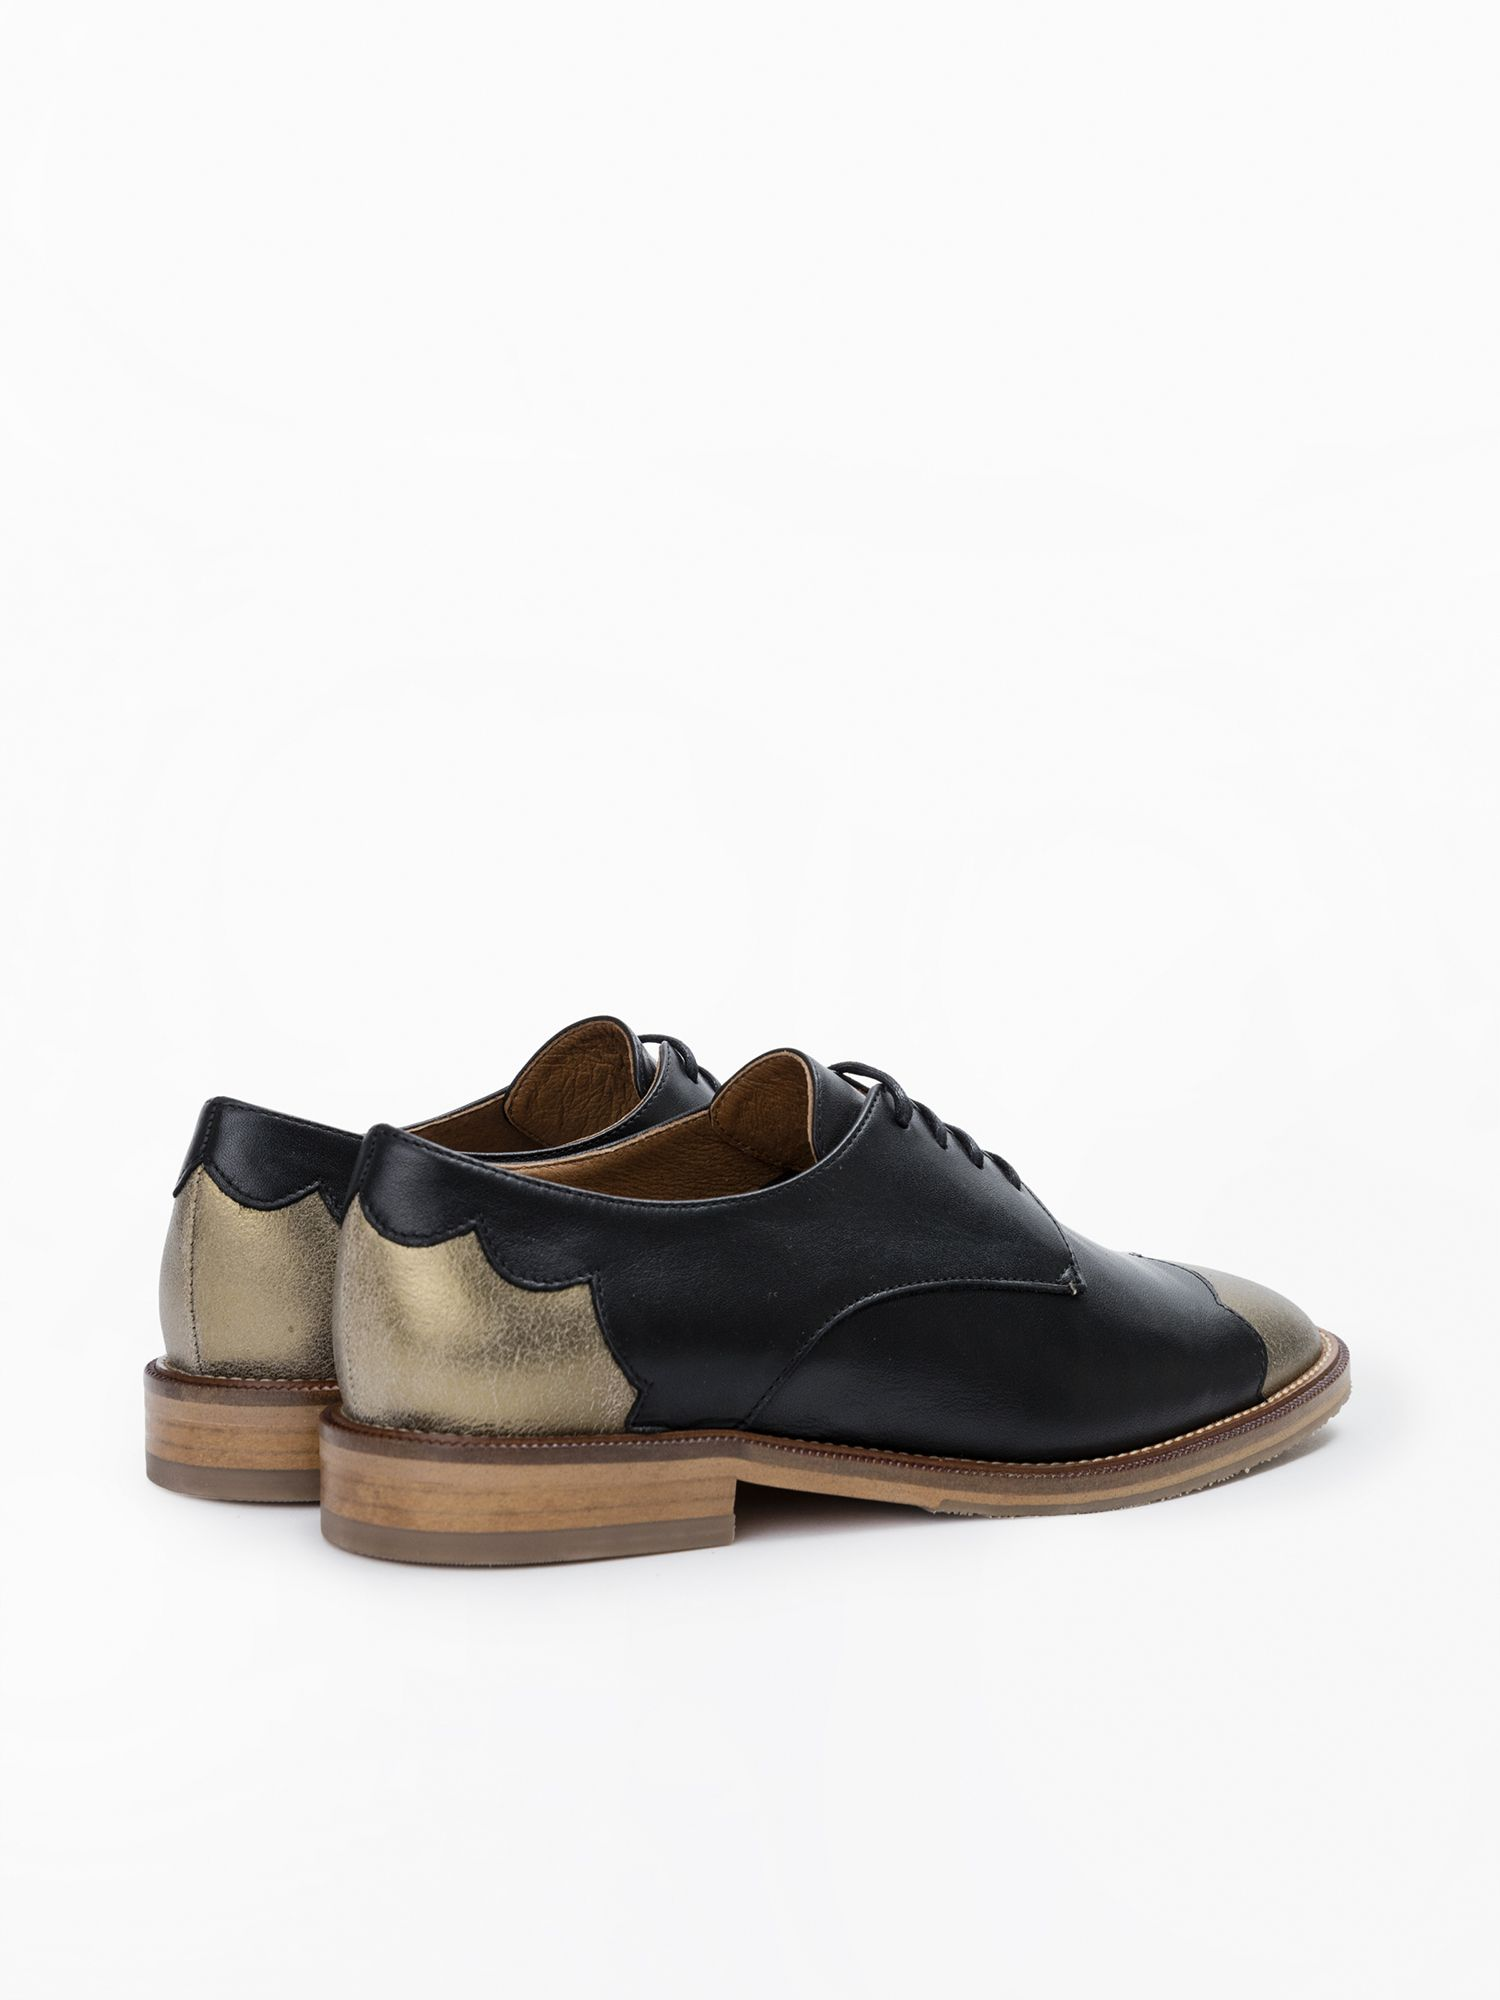 schmoove.fr Call Derby - Sauvage/Douro - Black/Antic